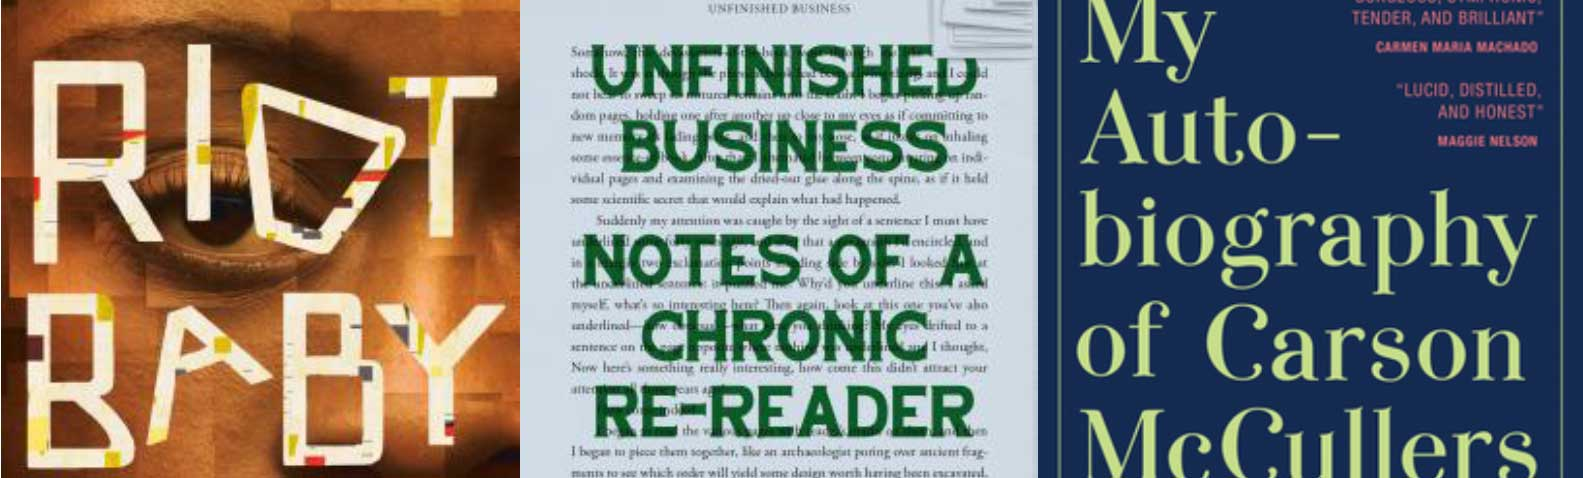 Reviewed by Booksellers